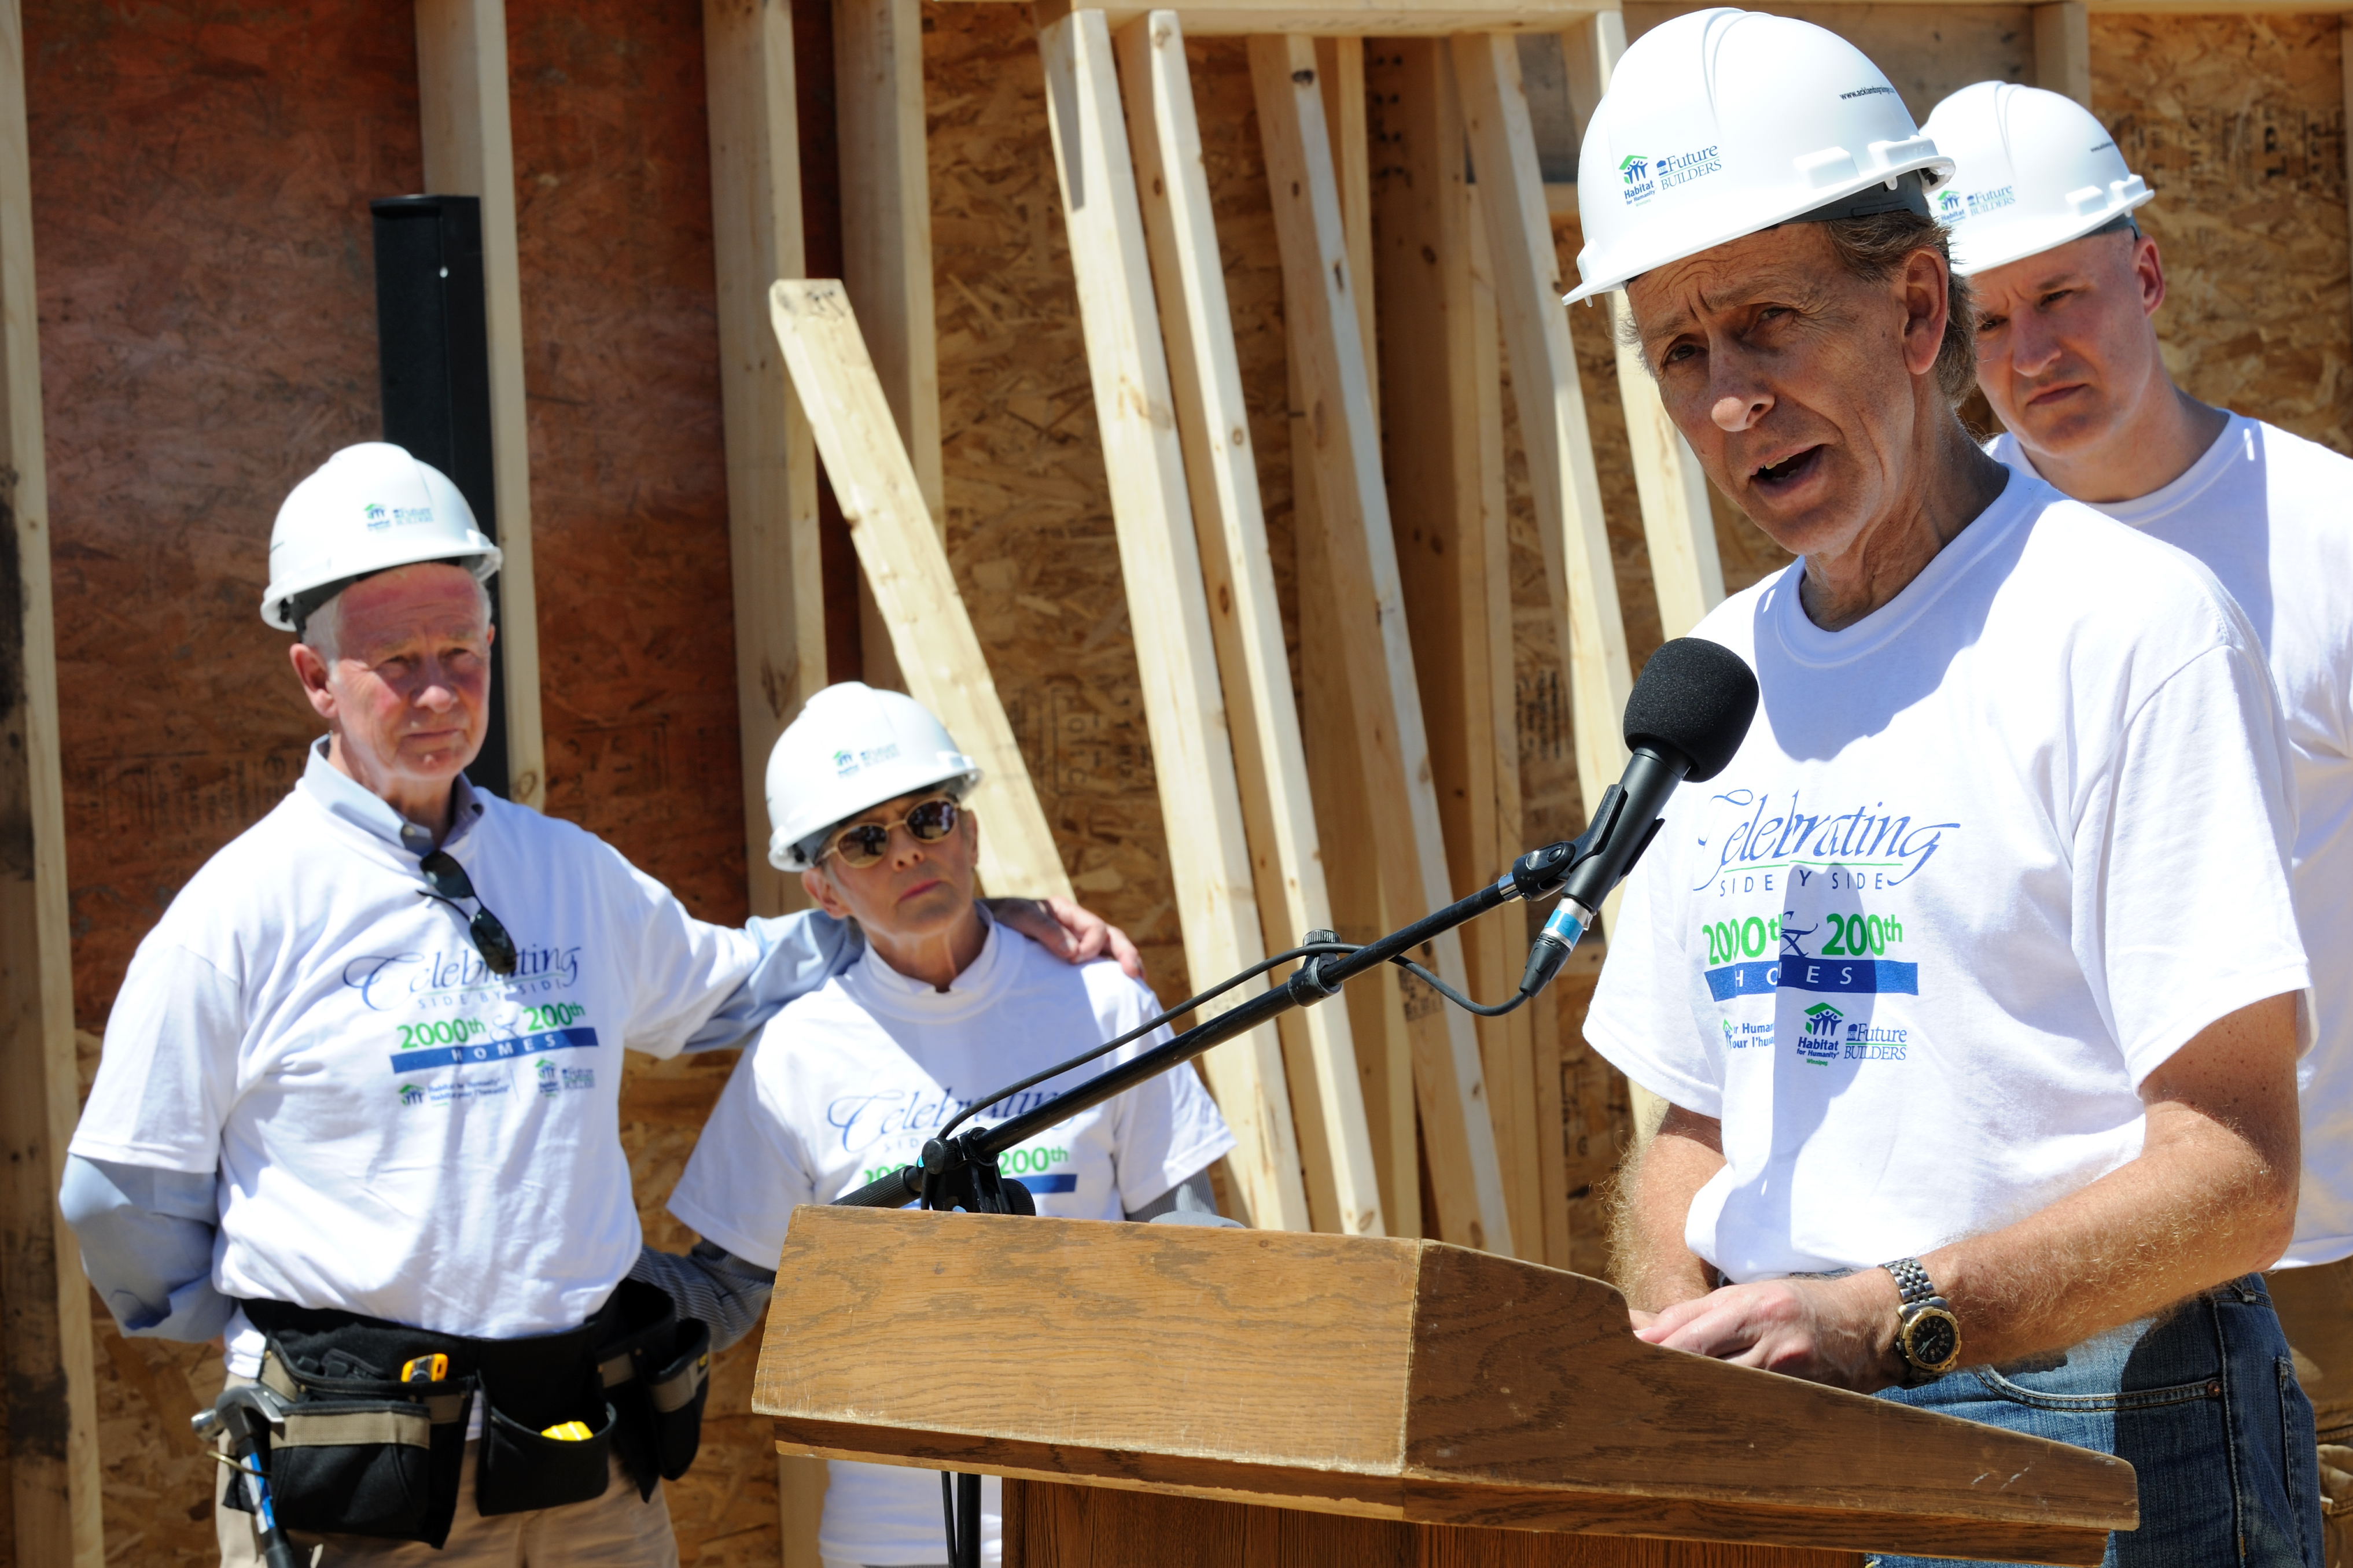 Habitat for Humanity is a non-profit organization working for a world where everyone has a safe and decent place to live. The mission of the organization is to mobilize volunteers and community partners in building affordable housing and promoting homeownership as a means to breaking the cycle of poverty.